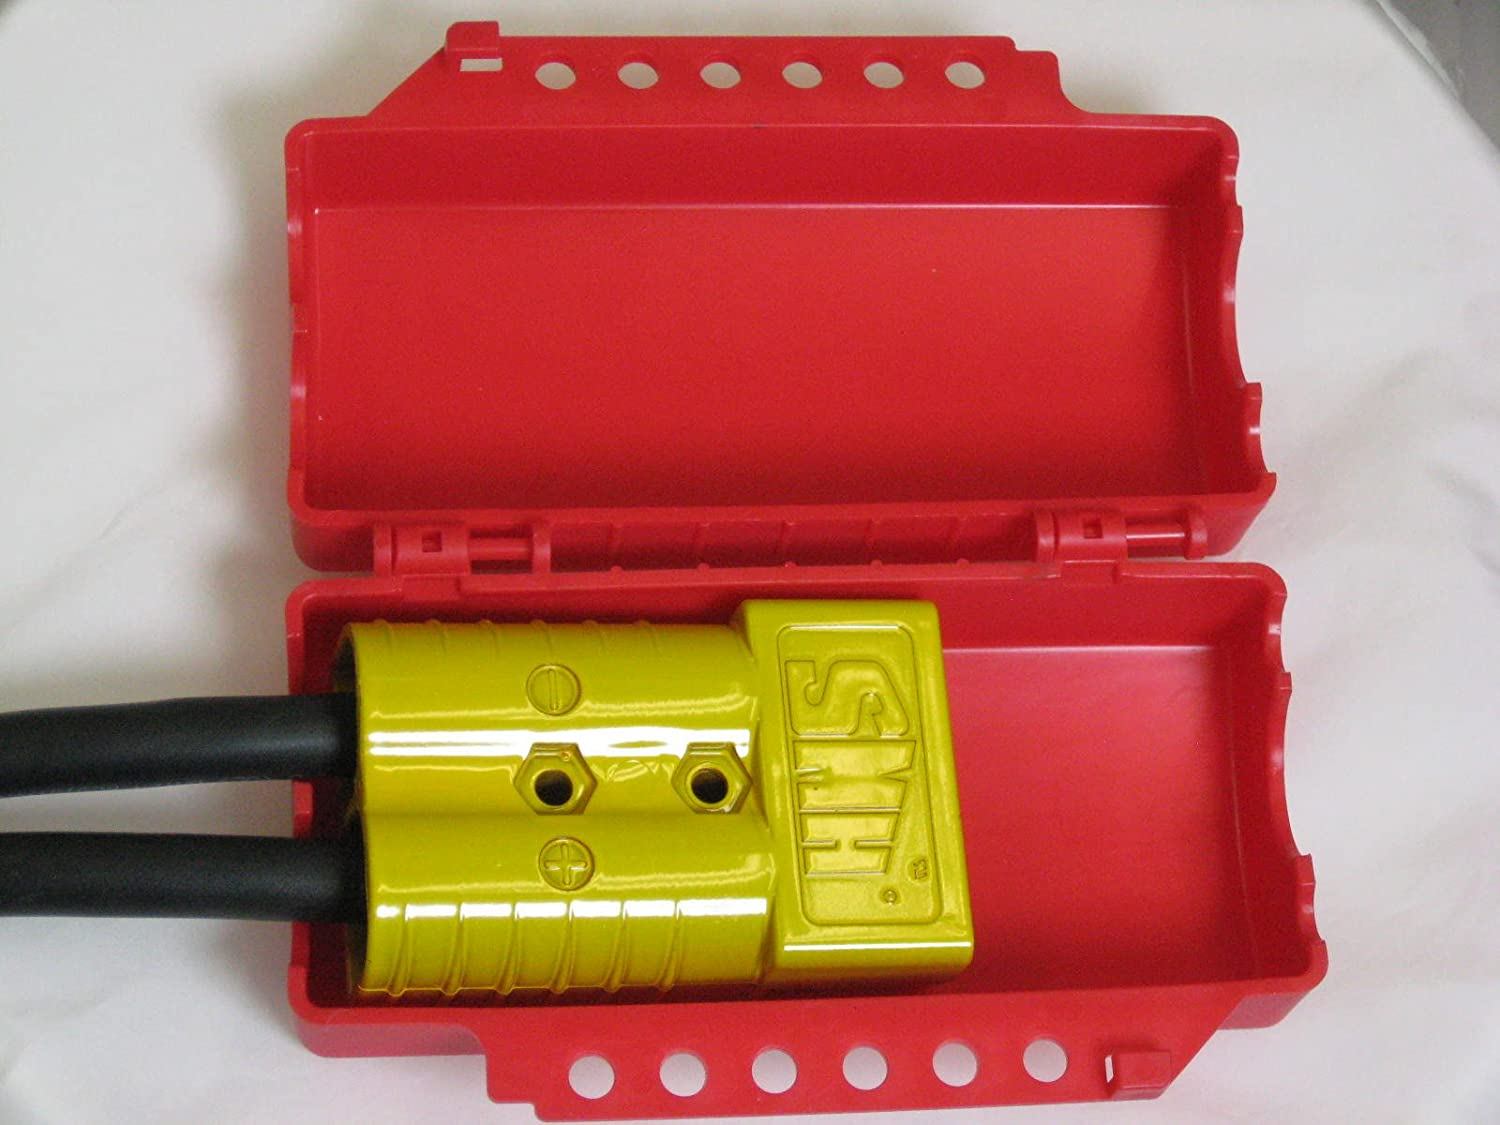 footwear new images of 100% quality ZING 7294 RecycLockout Lockout Tagout, Universal Plug/Forklift/Cylinder  Lockout, Recycled Plastic